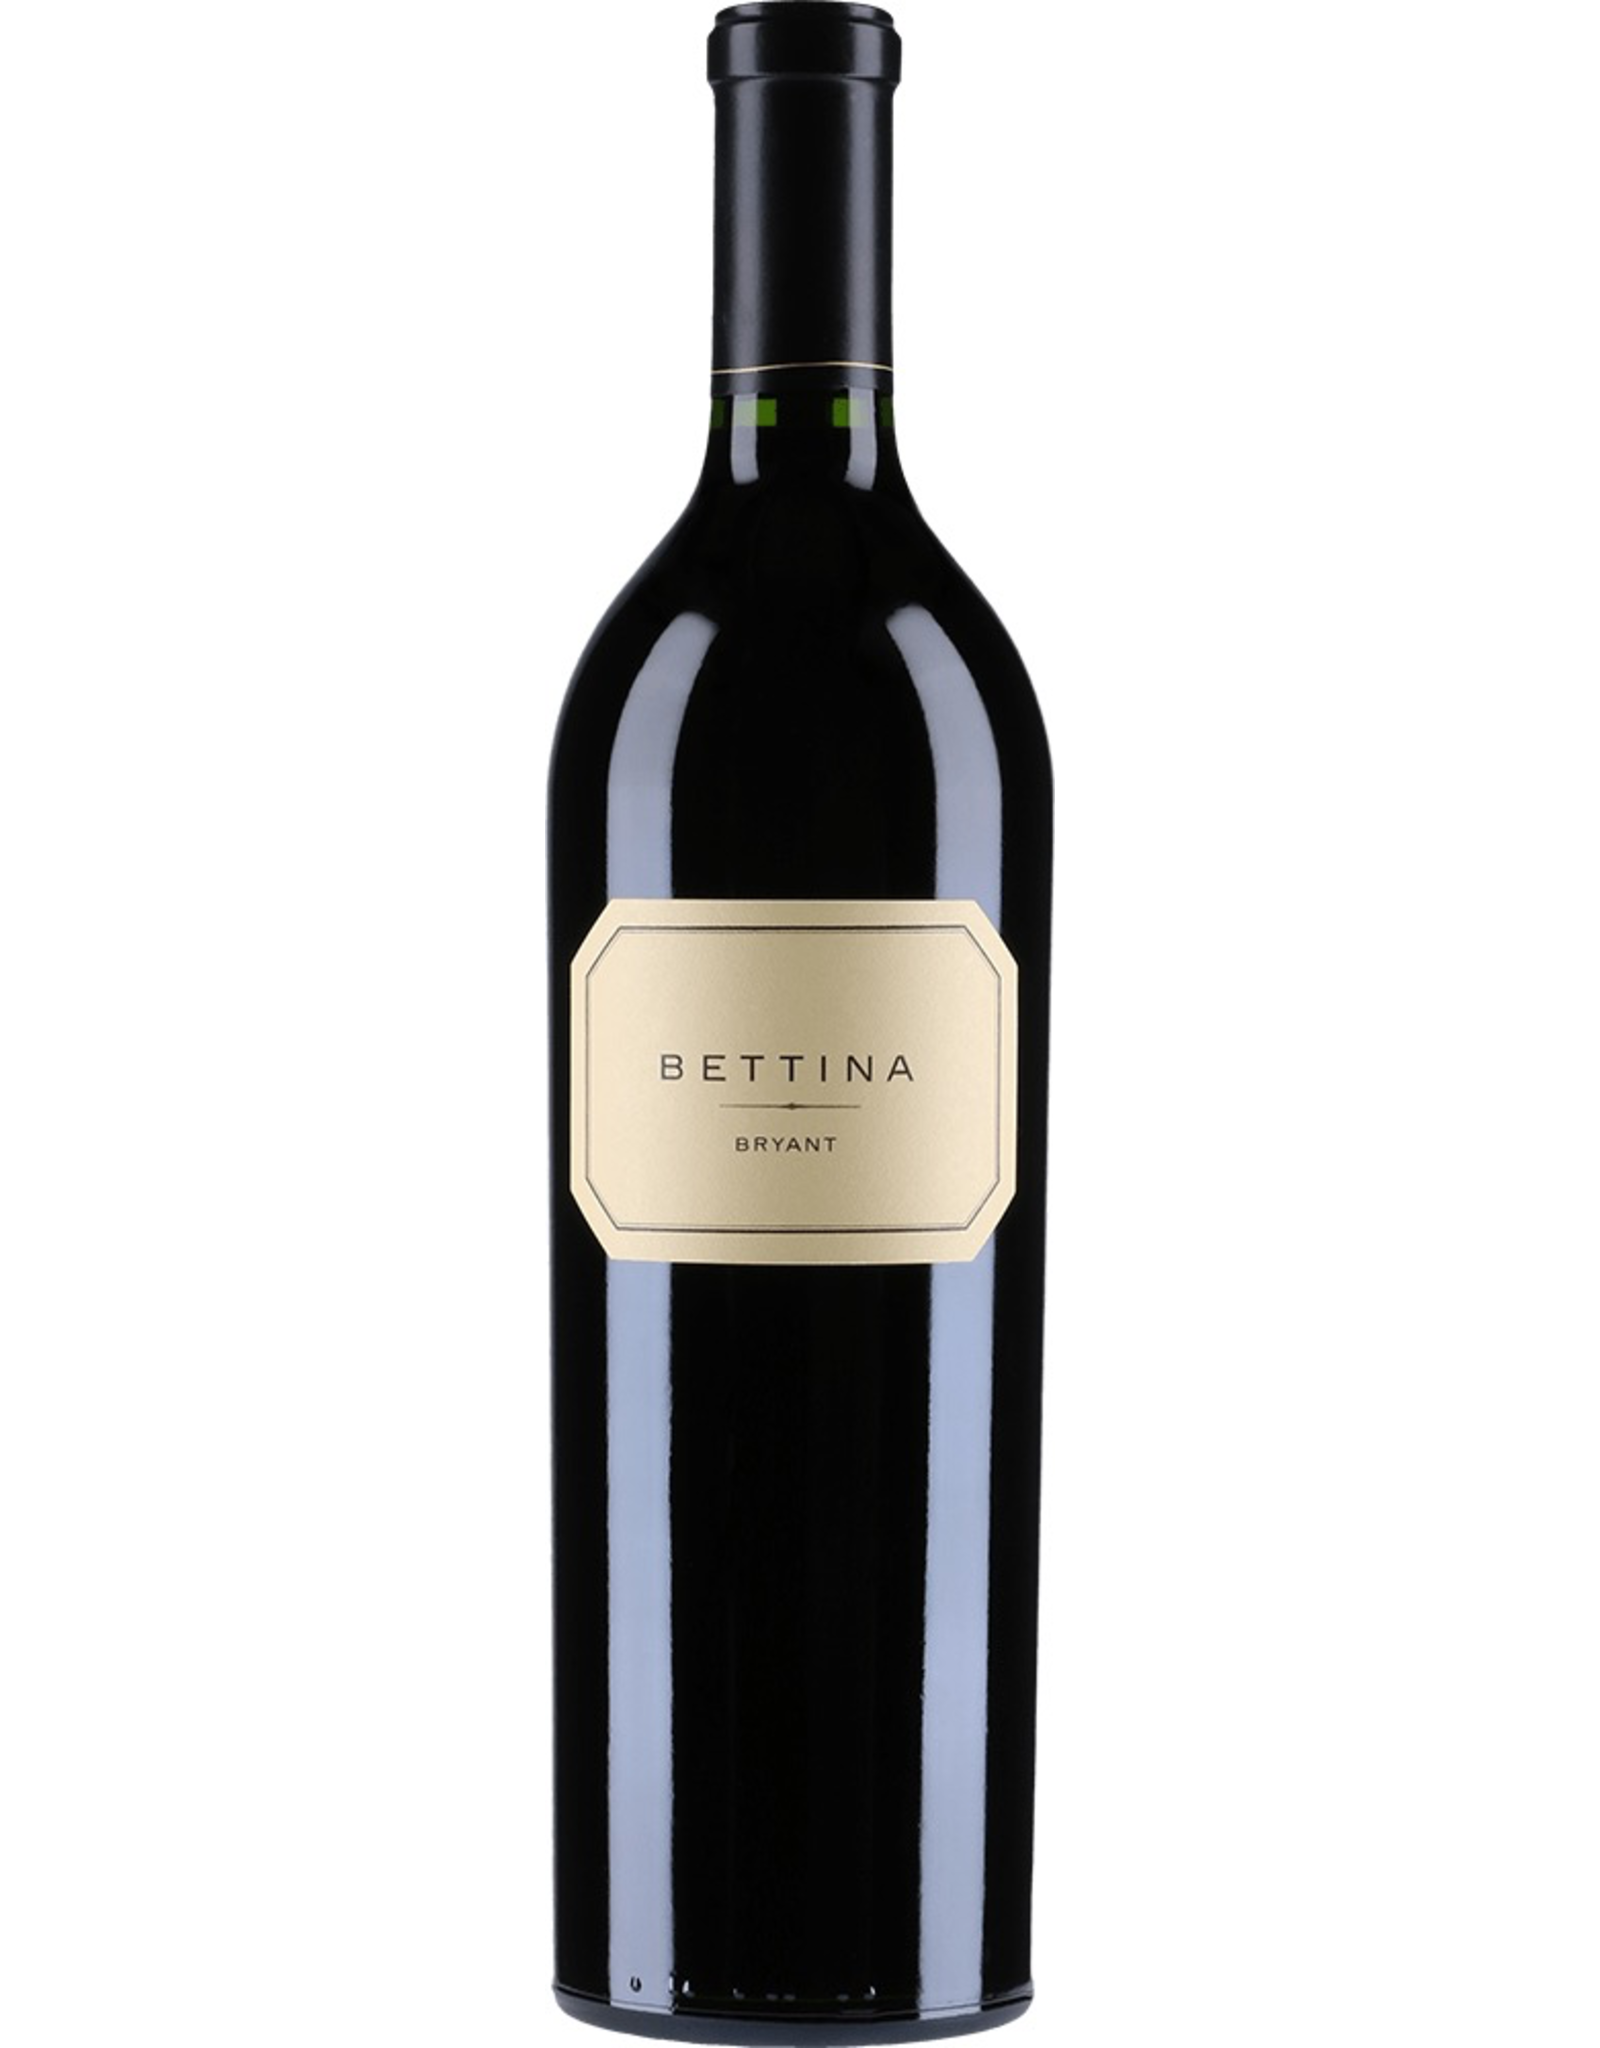 Red Wine 2015, Bryant Family Bettina, Red Bordeaux Blend, Multi-regional Blend, Napa Valley, California, 15.1% Alc, CTnr JS98